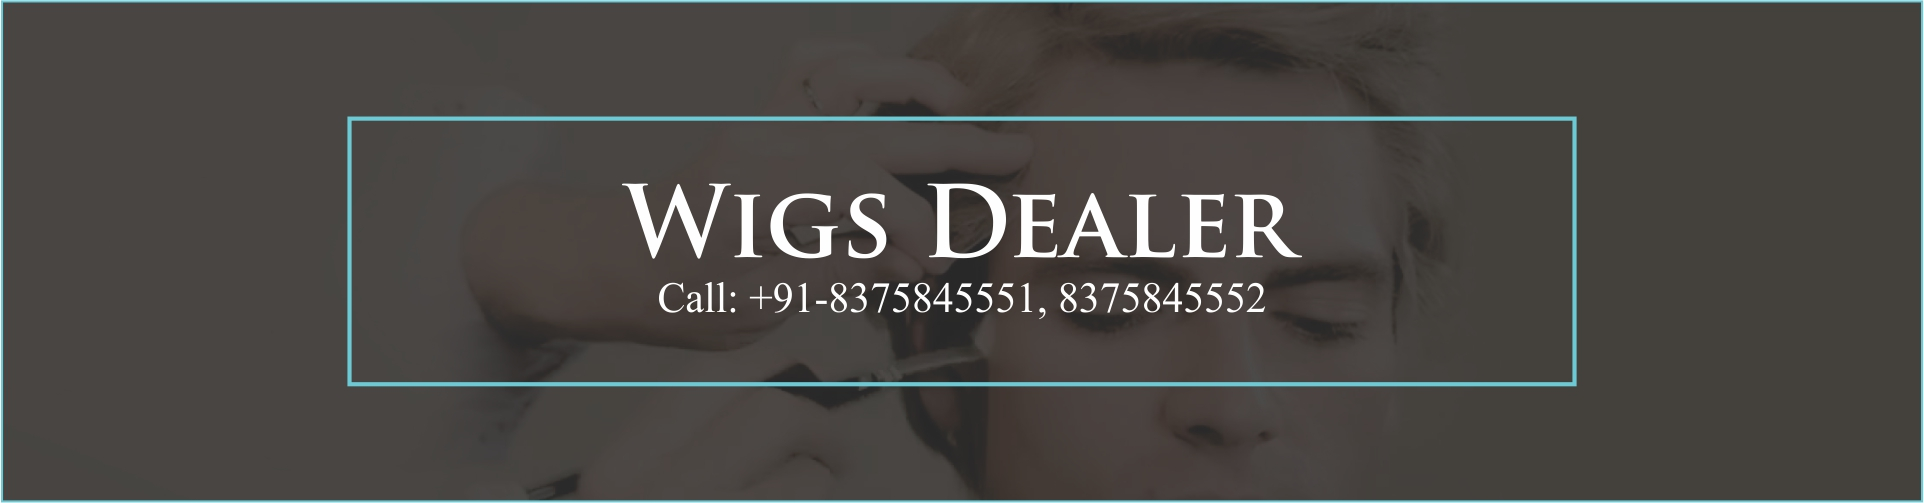 Wigs Dealer in Delhi - PHC Hair Clinic